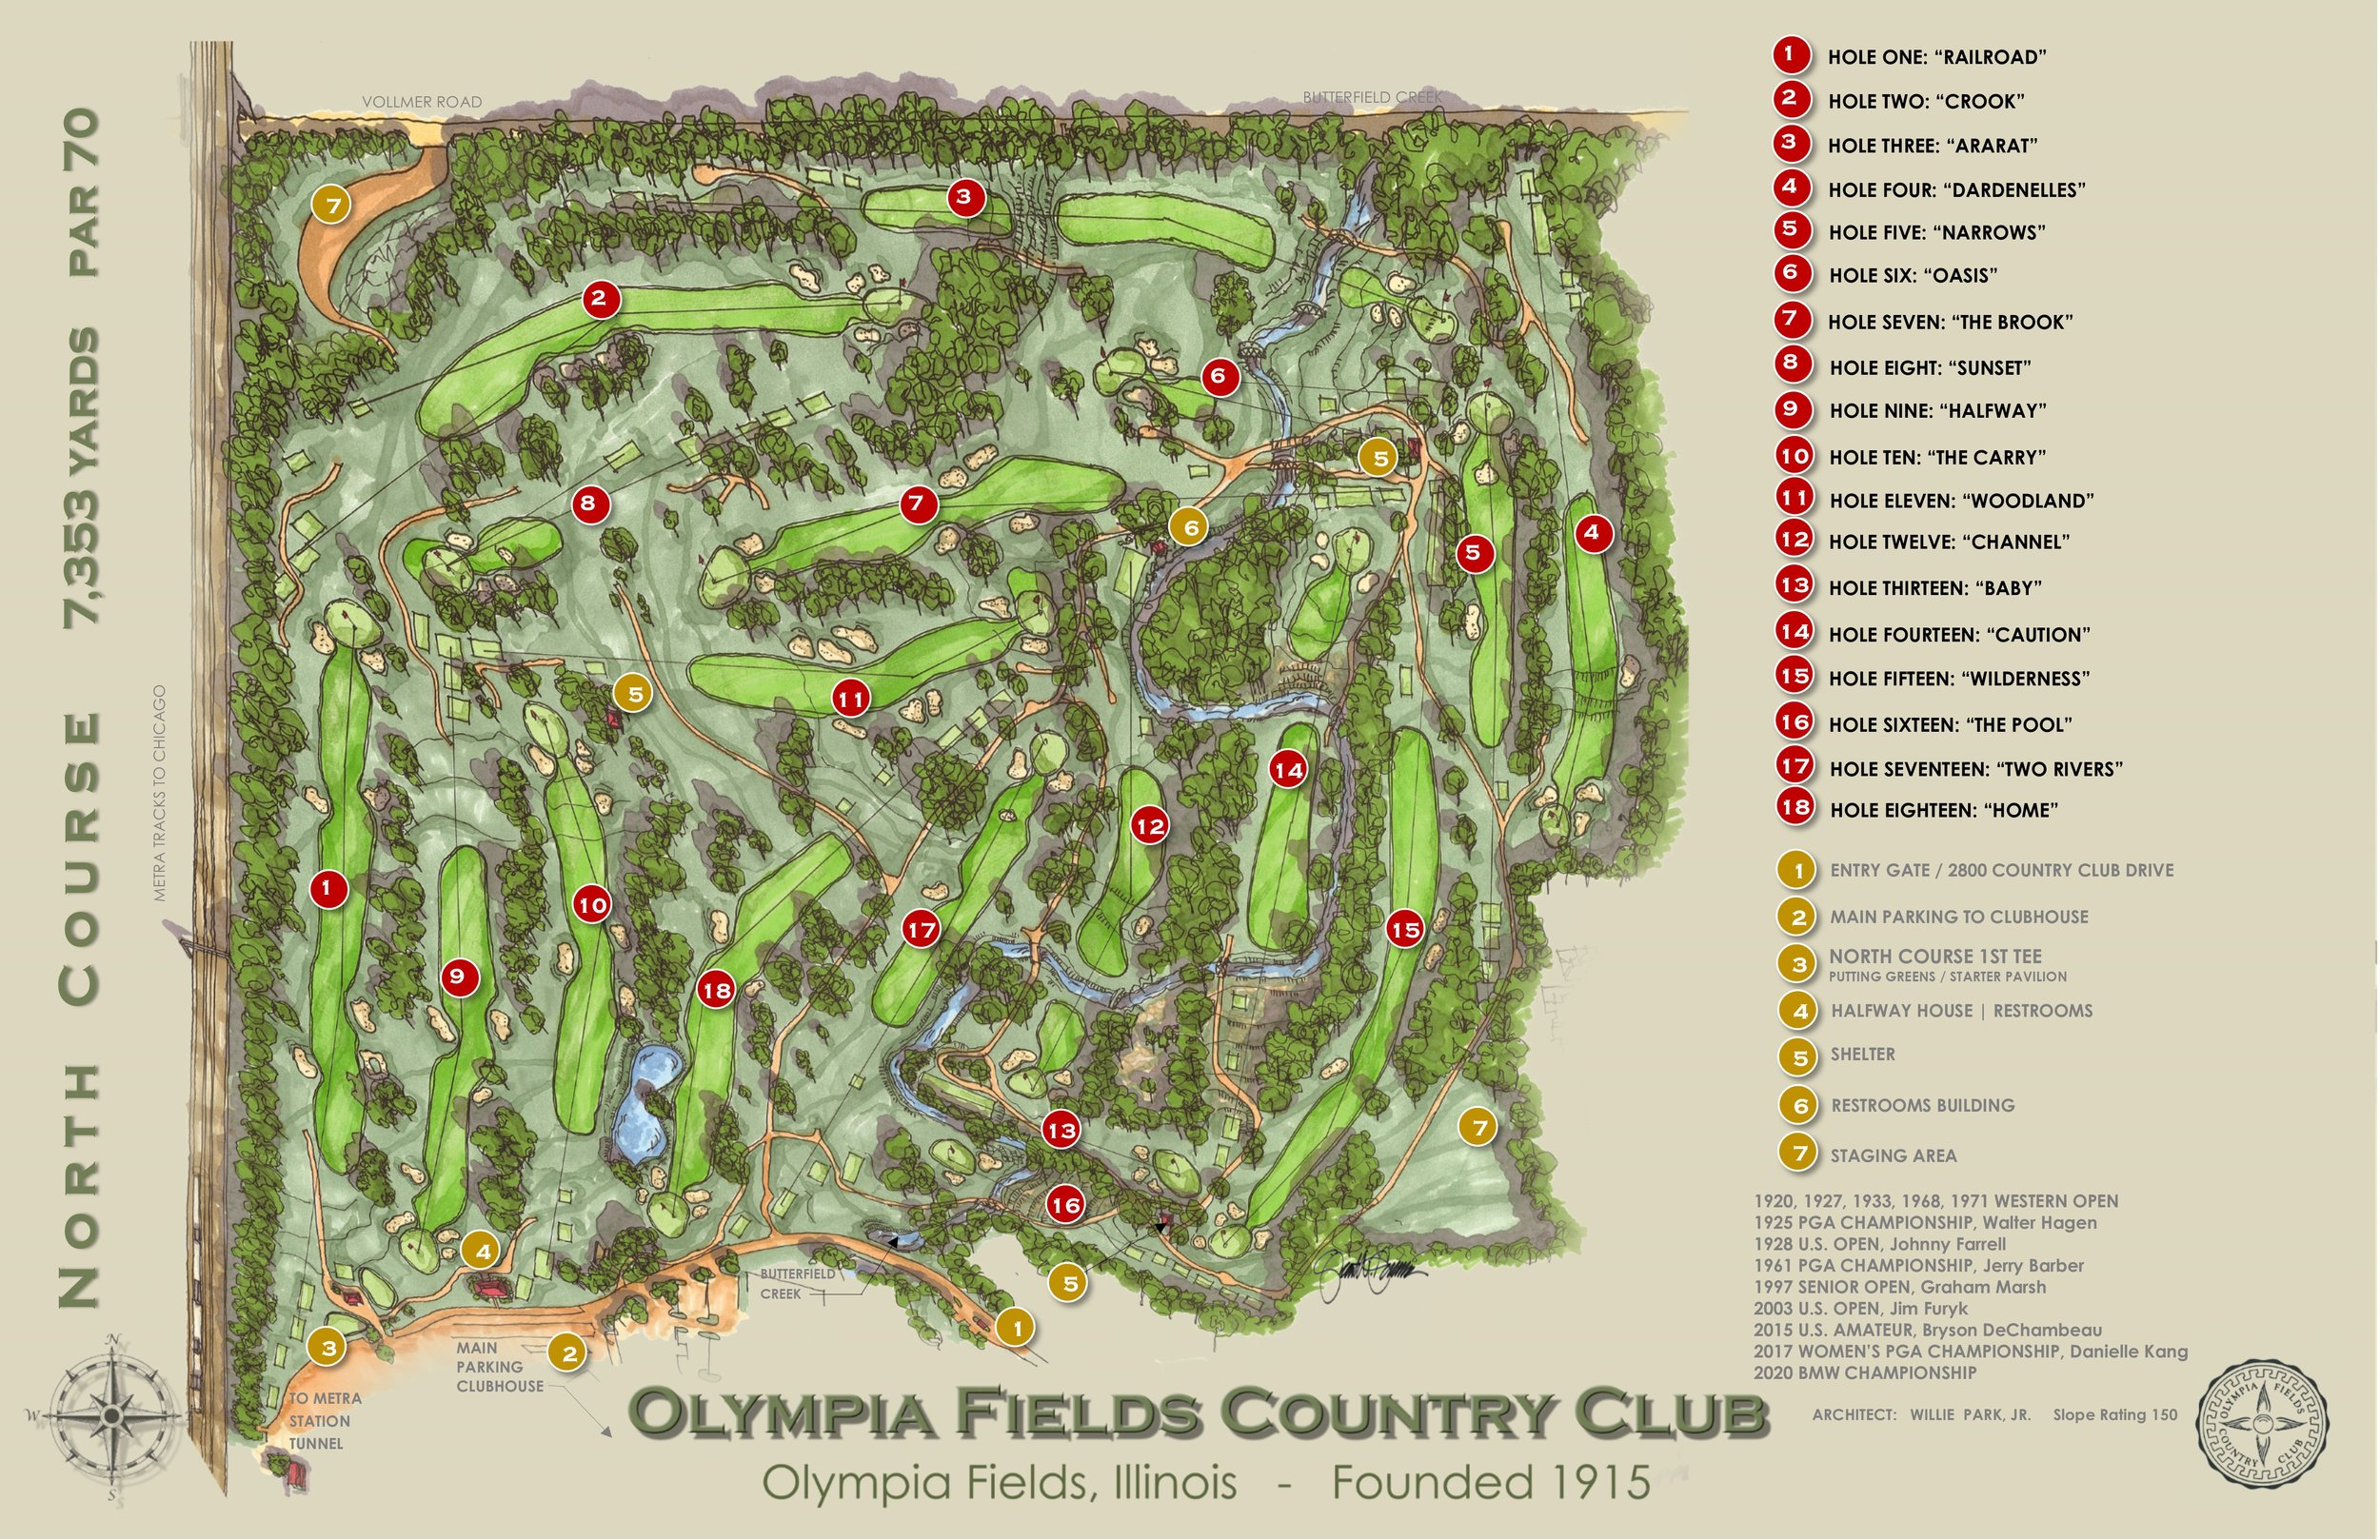 OFCC North Course Map 01 2019-04-23.jpg